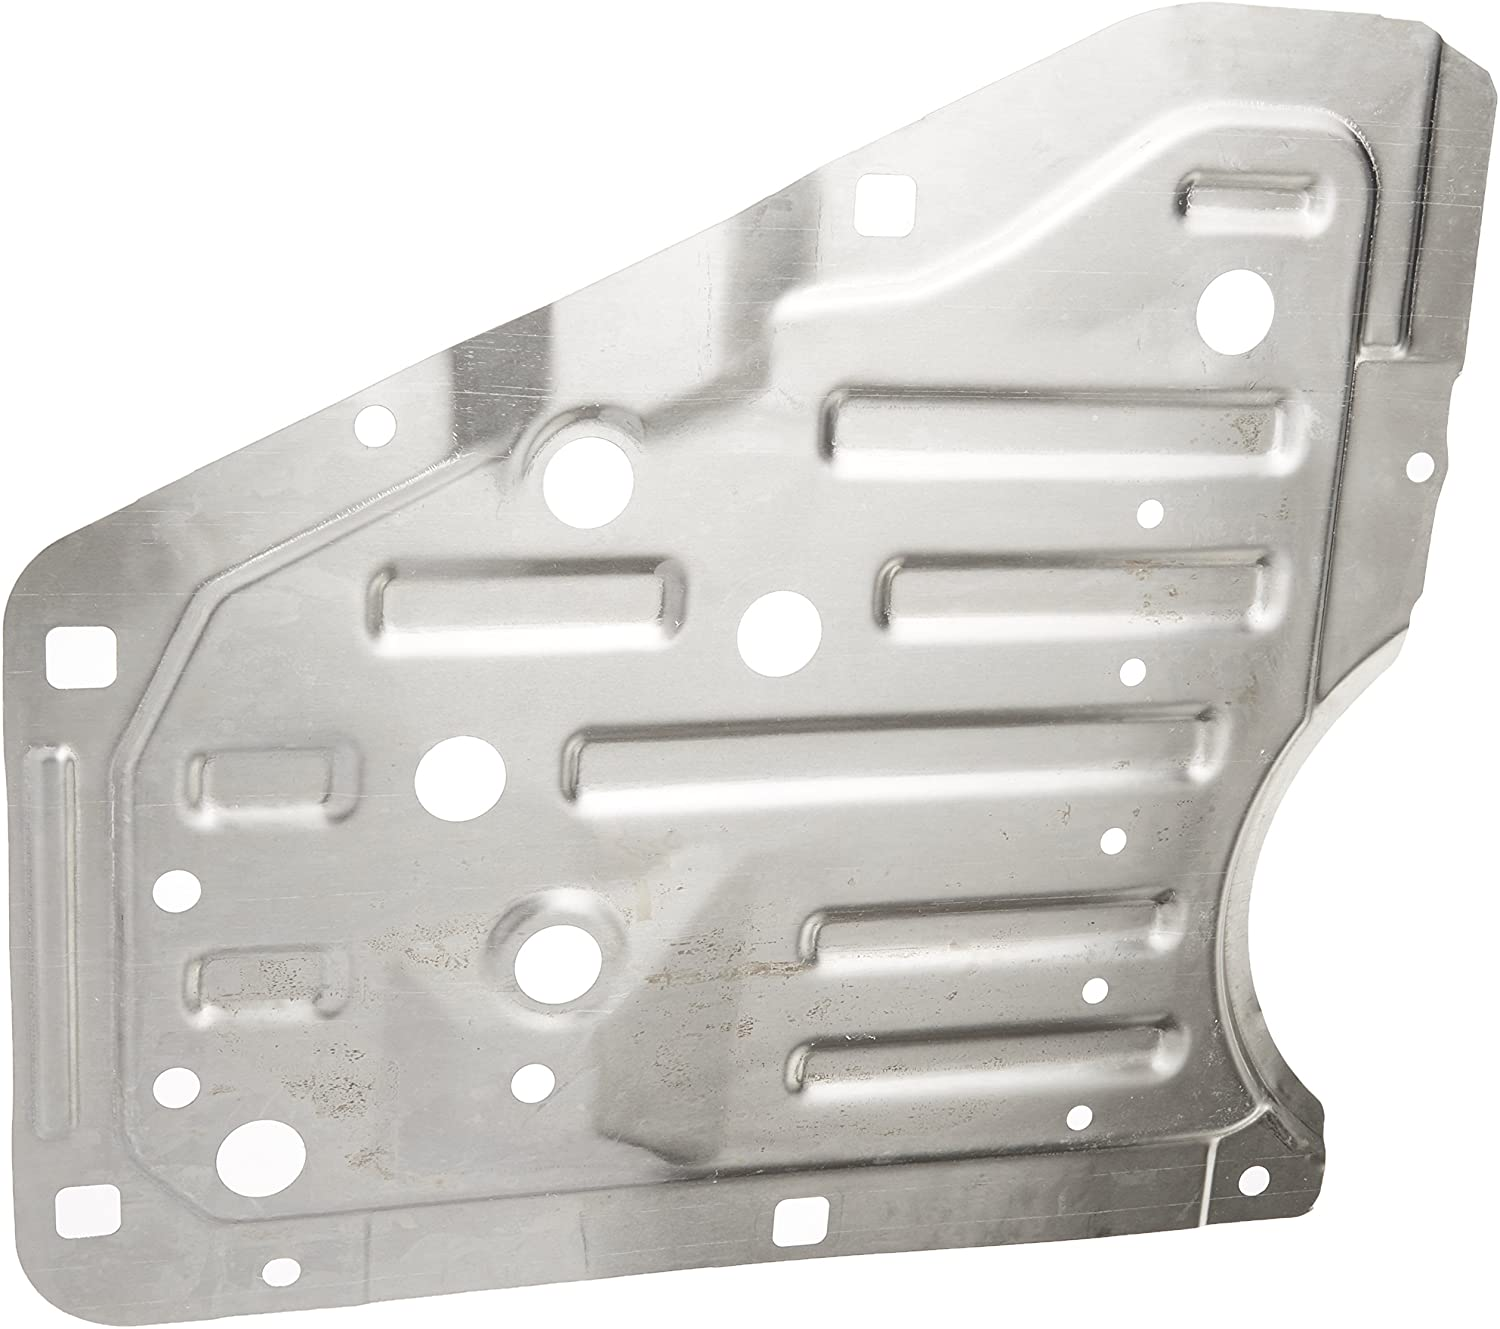 Lower Plate Genuine Honda 74114-TR0-A00 Front Engine Cover